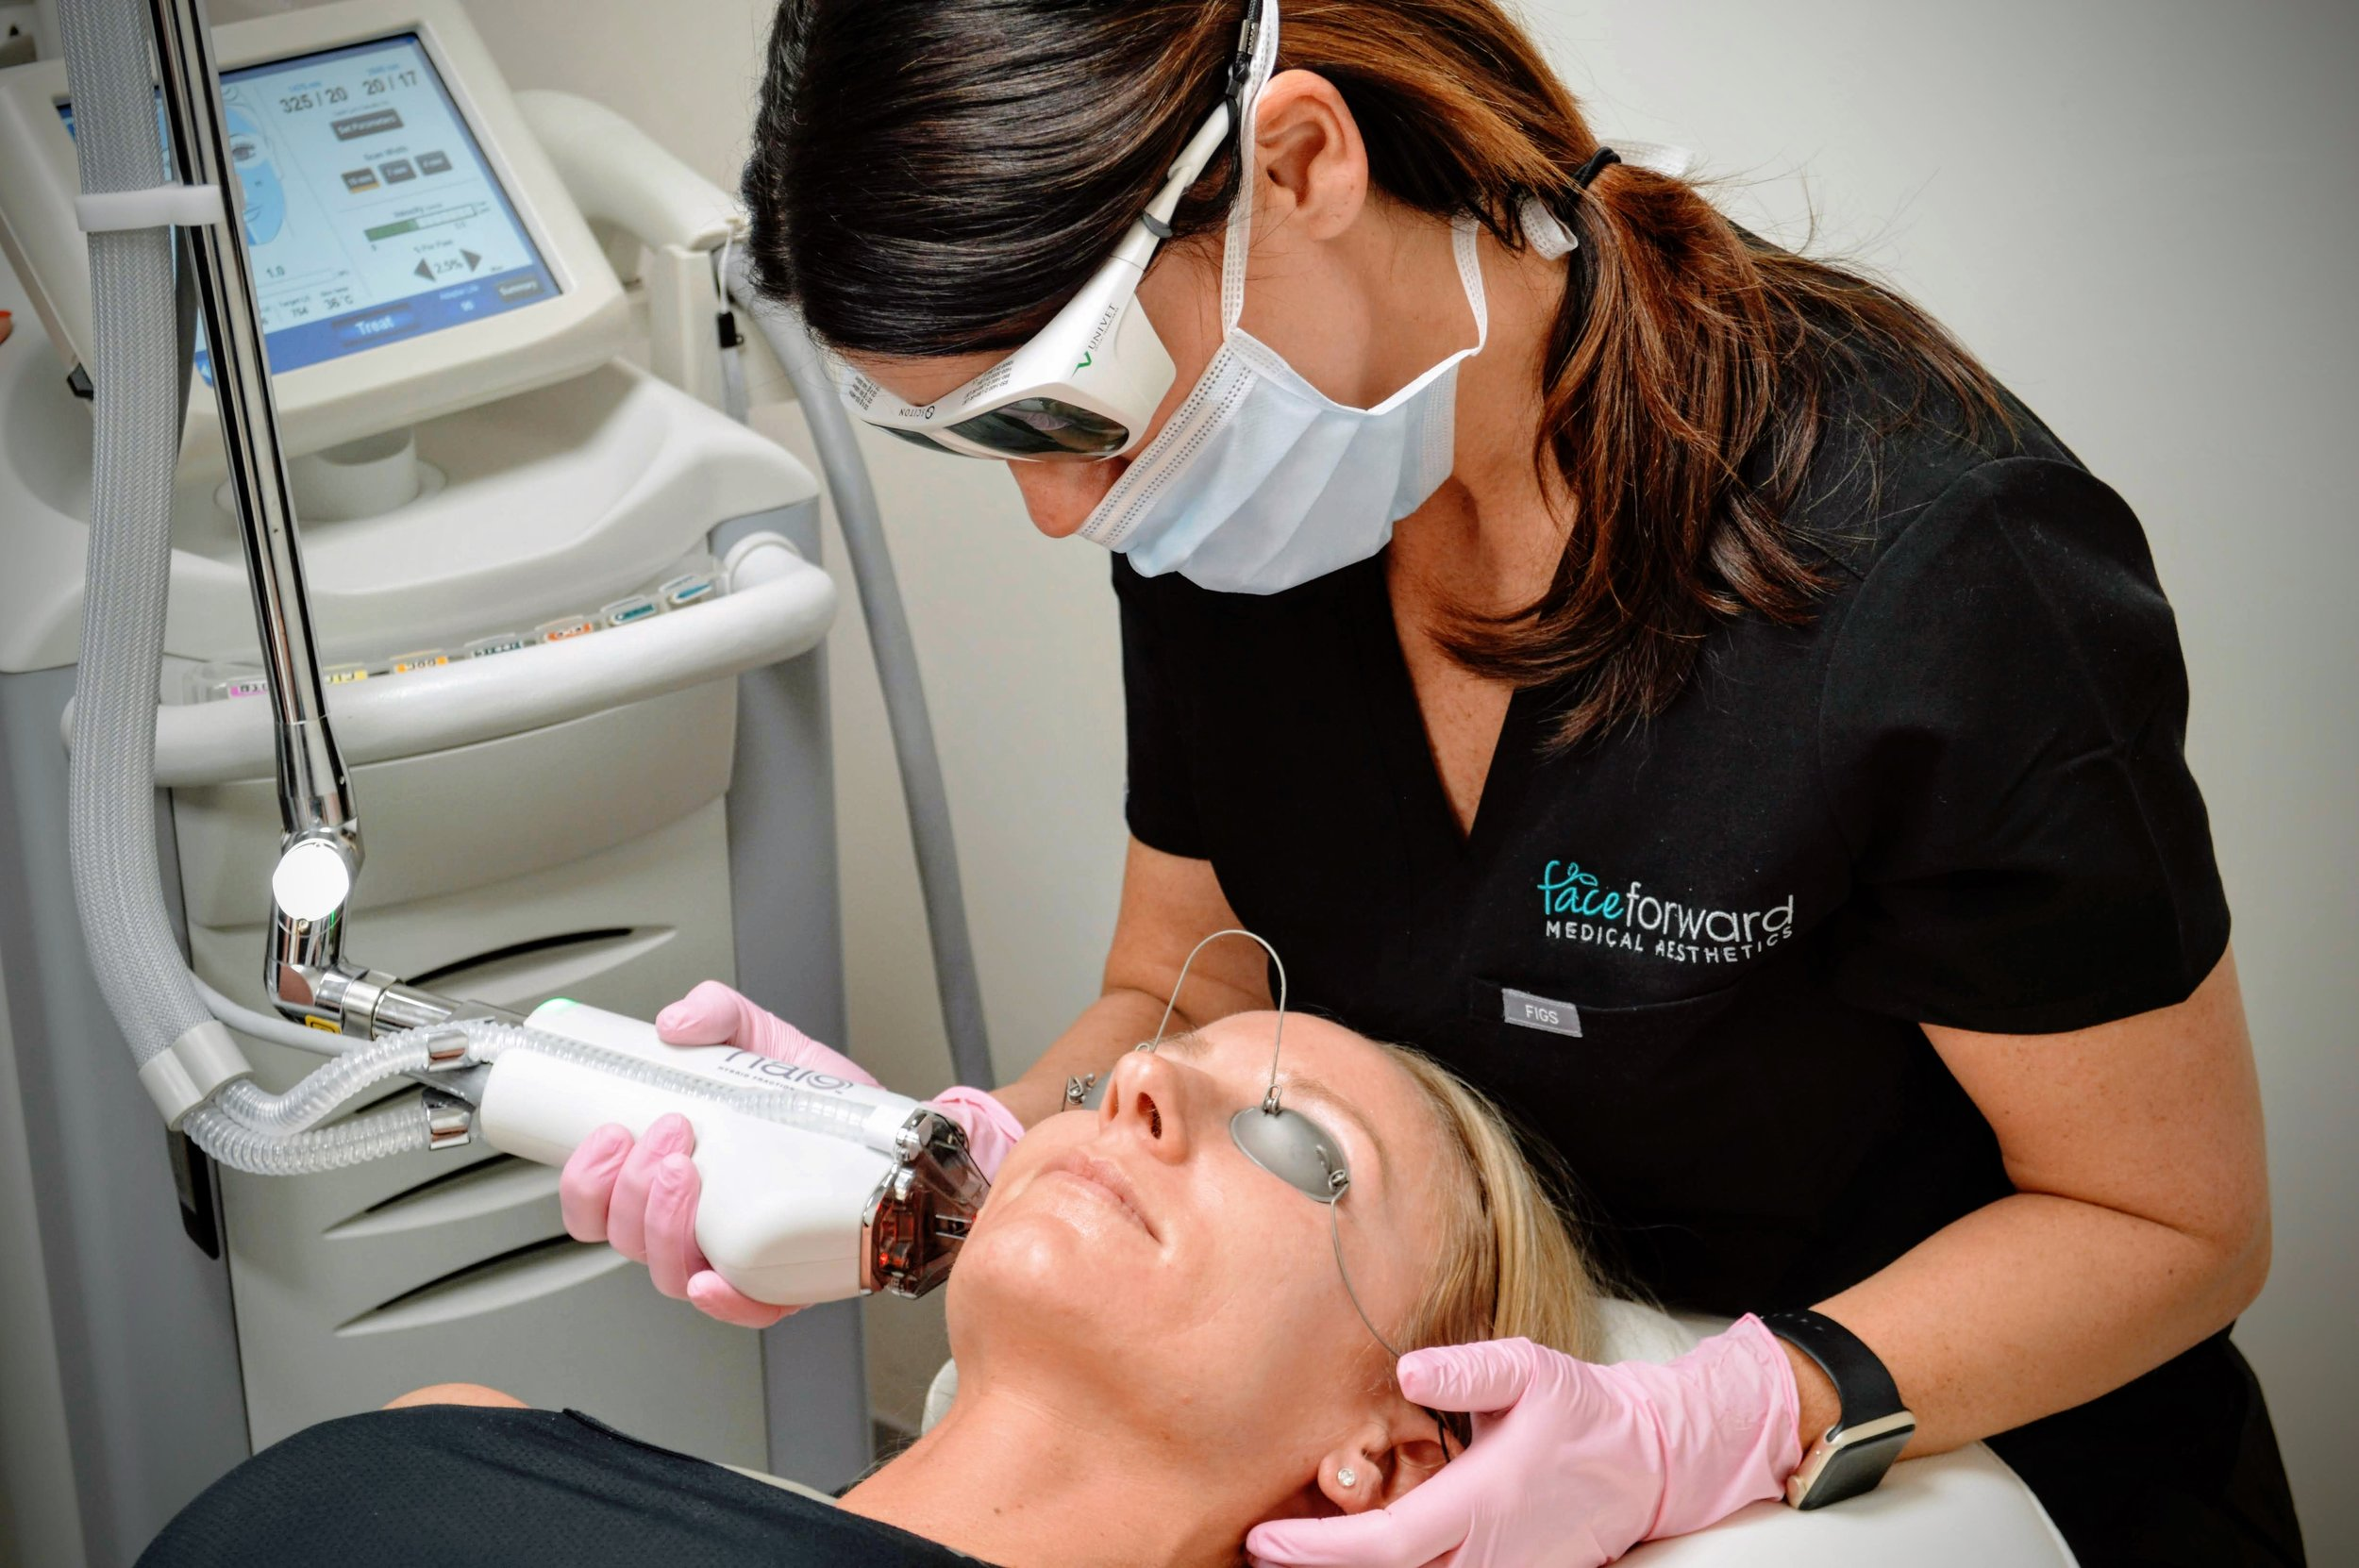 IPL BBL Photofacial in Lexington, MA